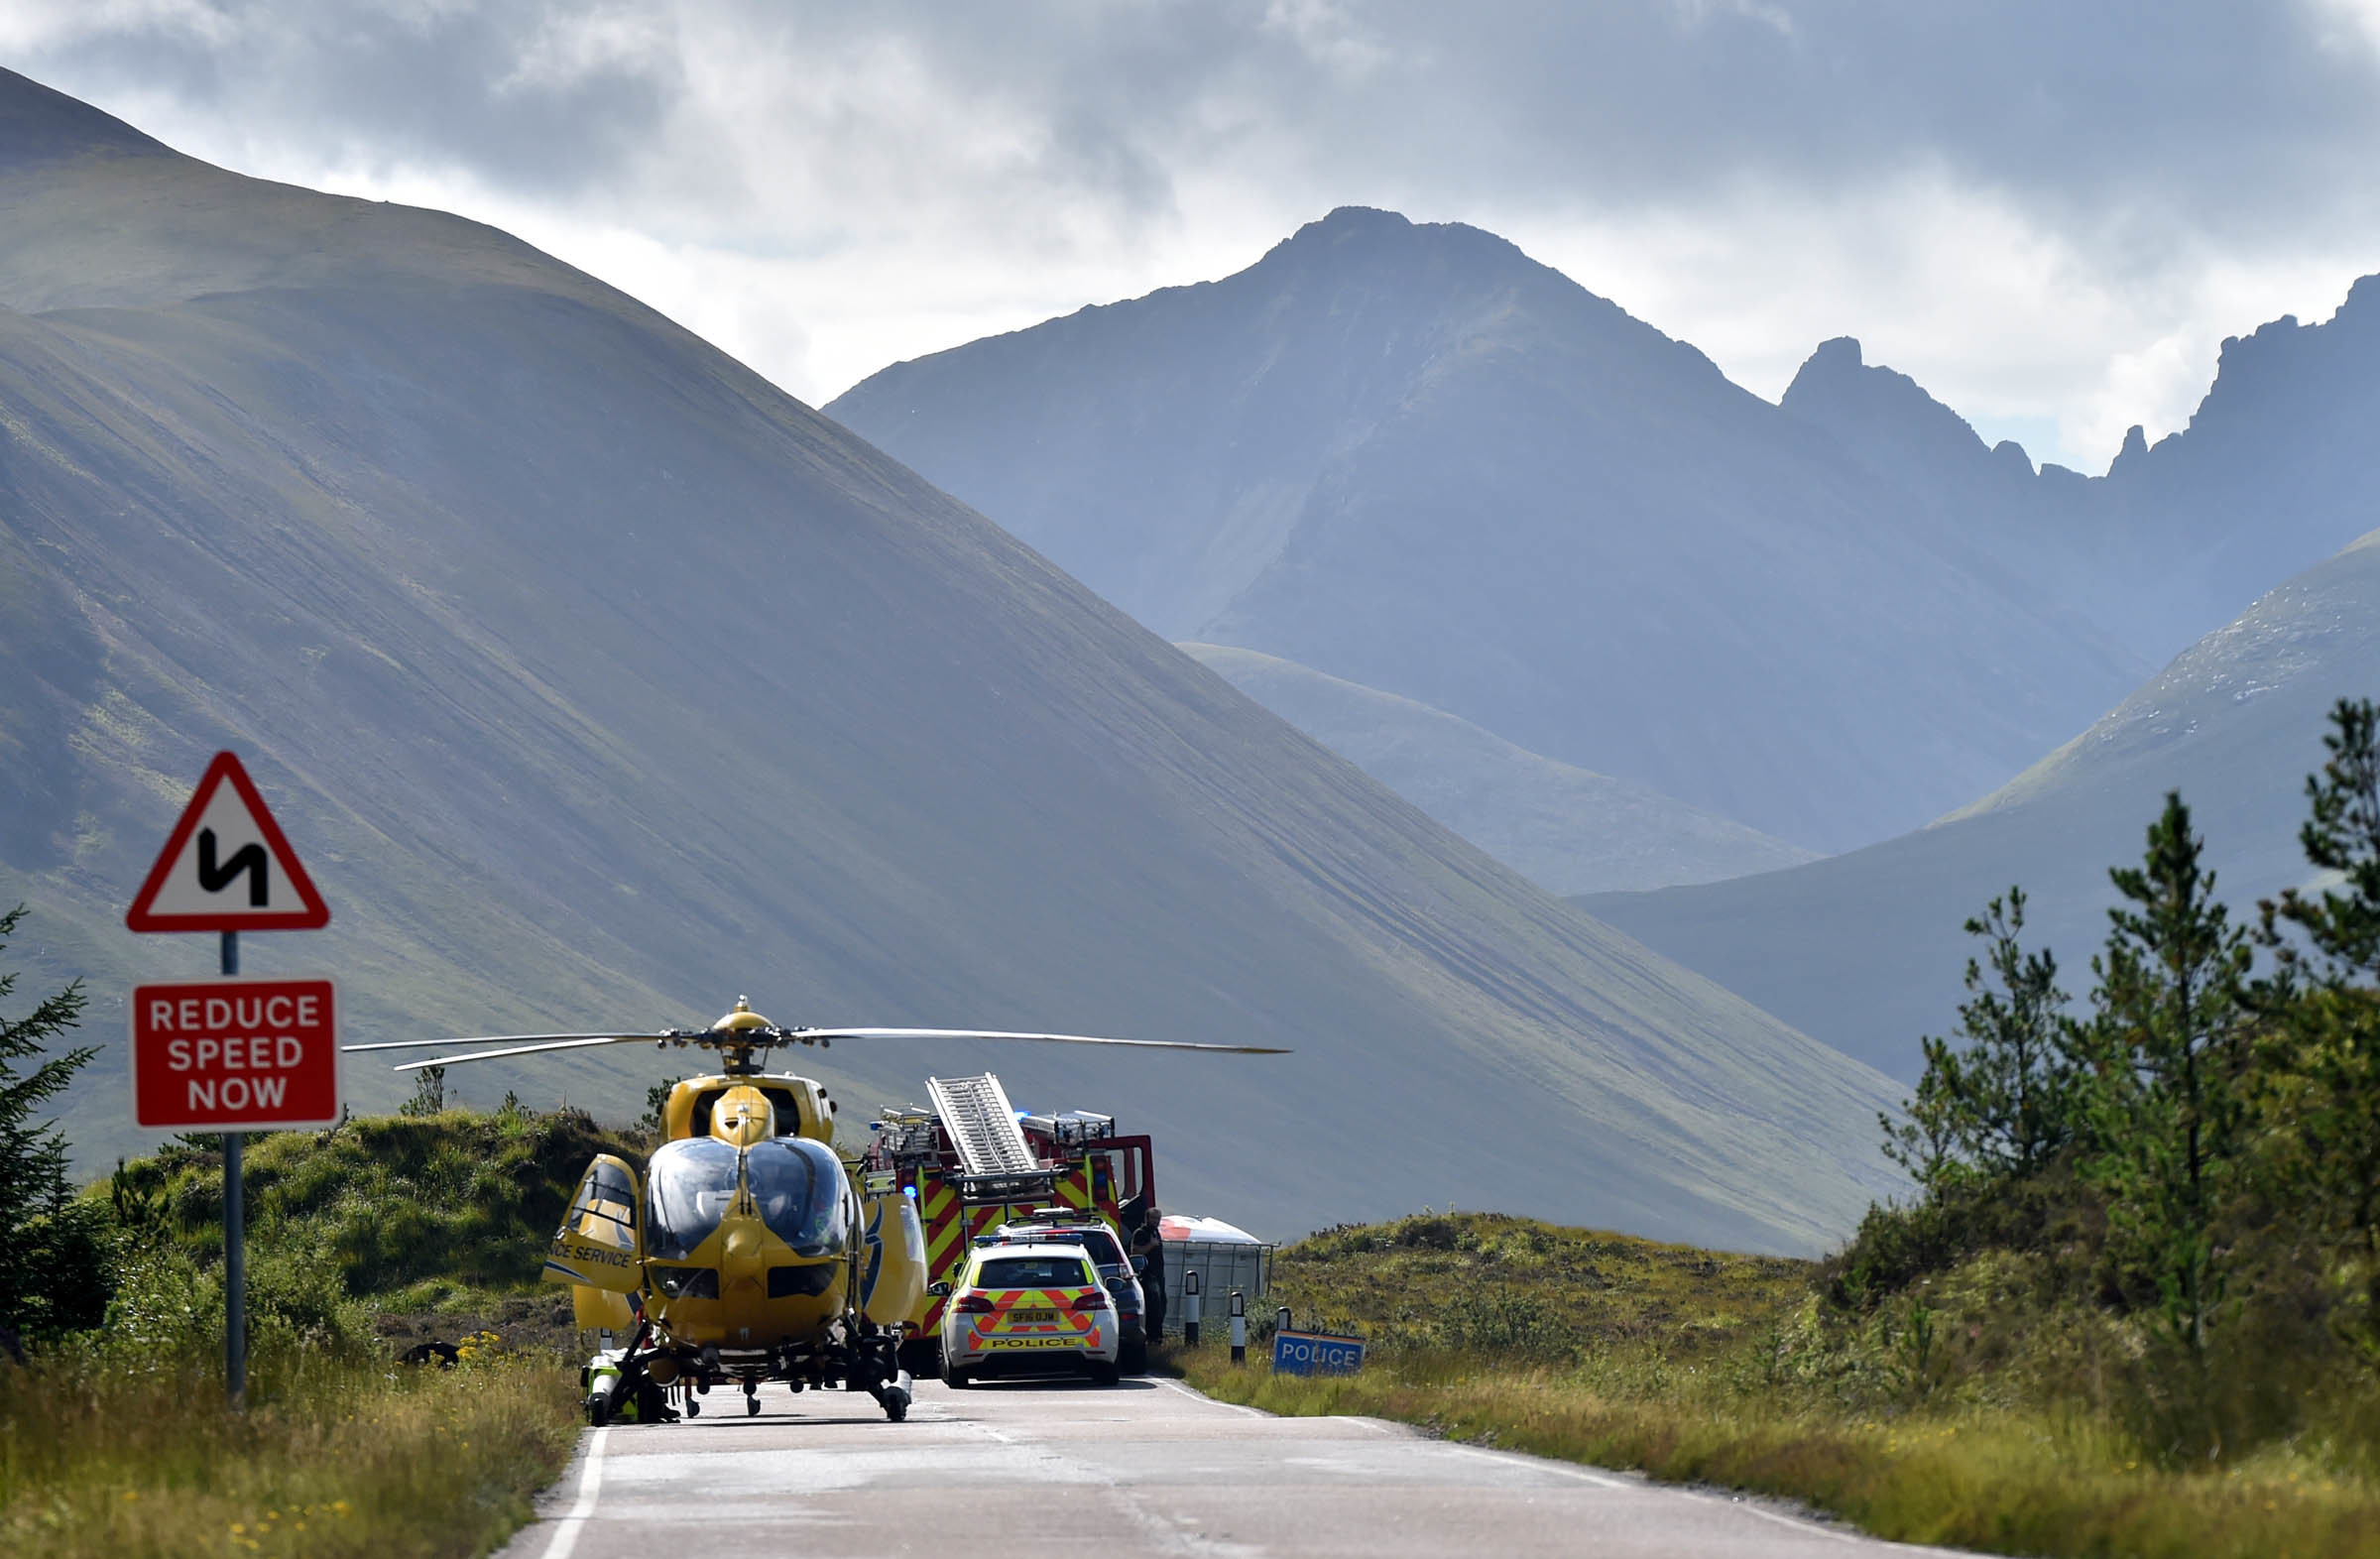 The incident took place on the A87 around two miles north of Sligachan, Photo by Iain Smith